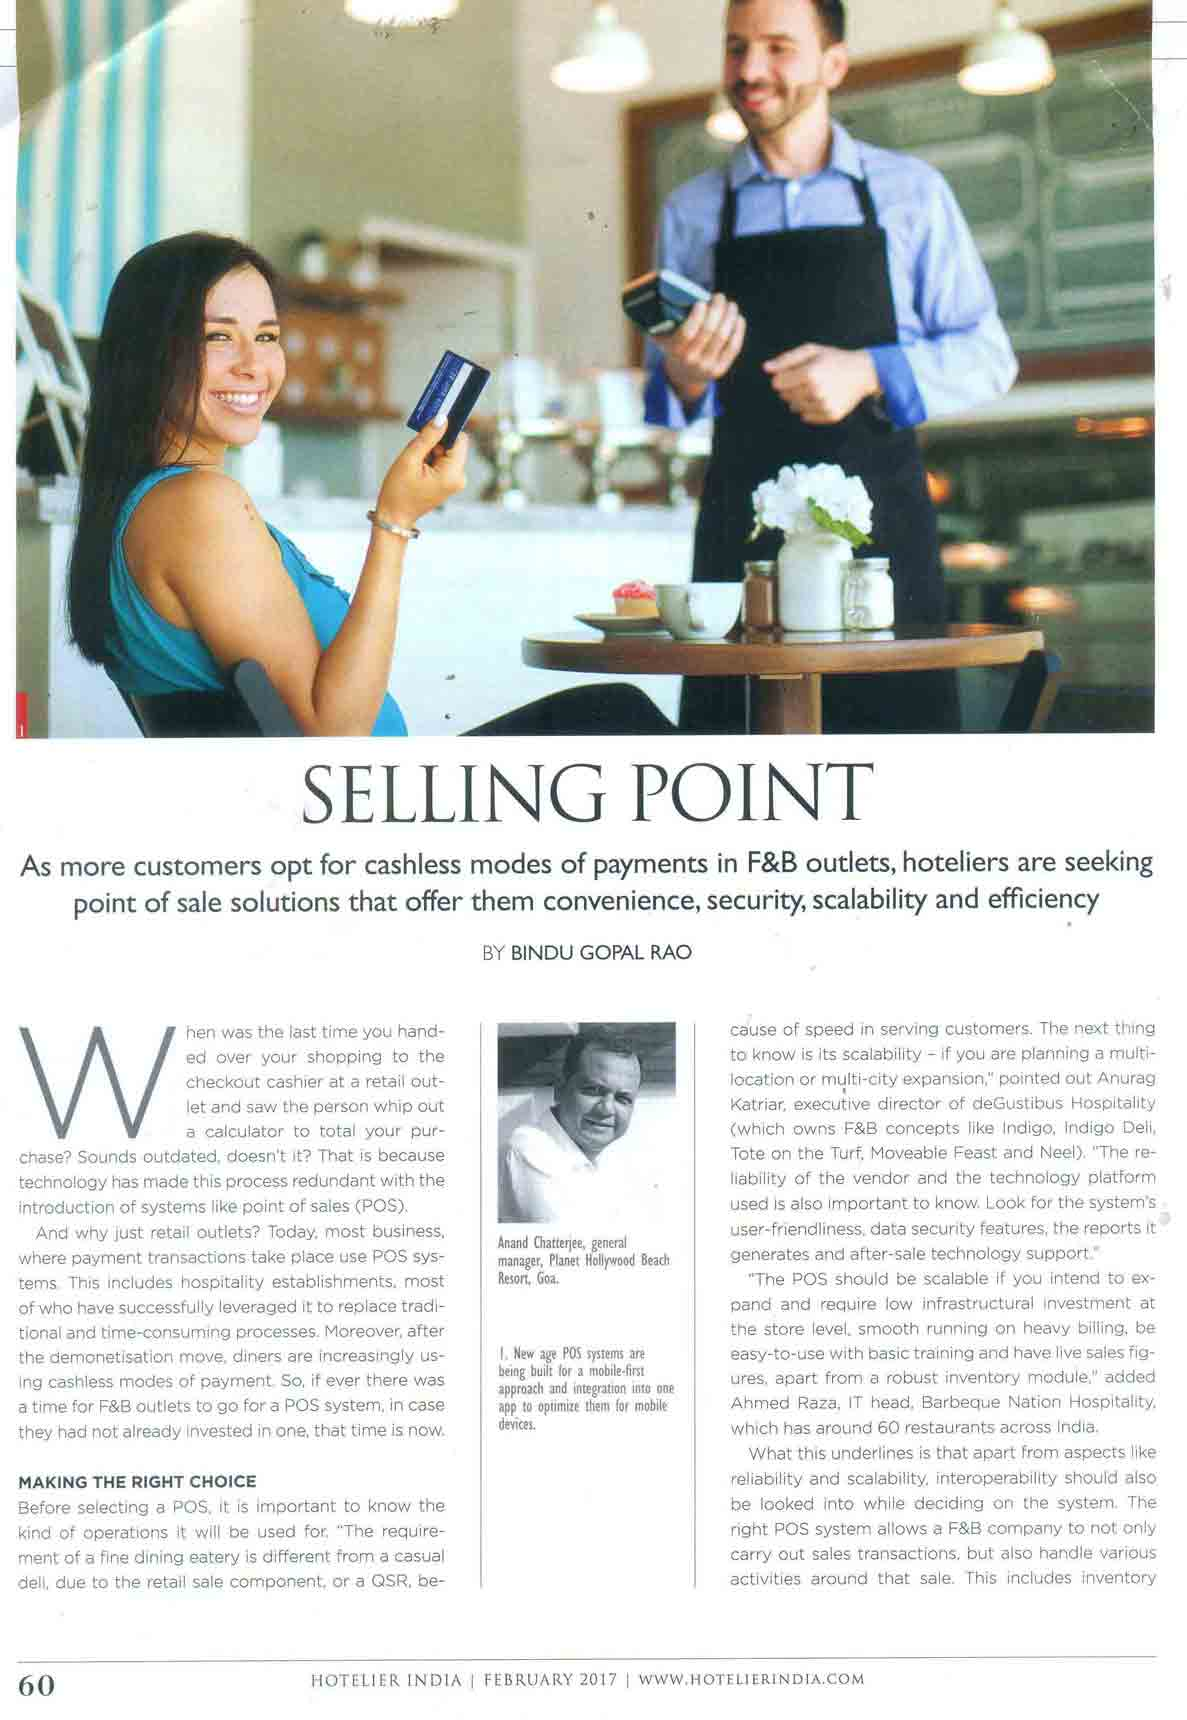 justa-hotels-and-resorts-featured-in-hotelier-india-february-2017